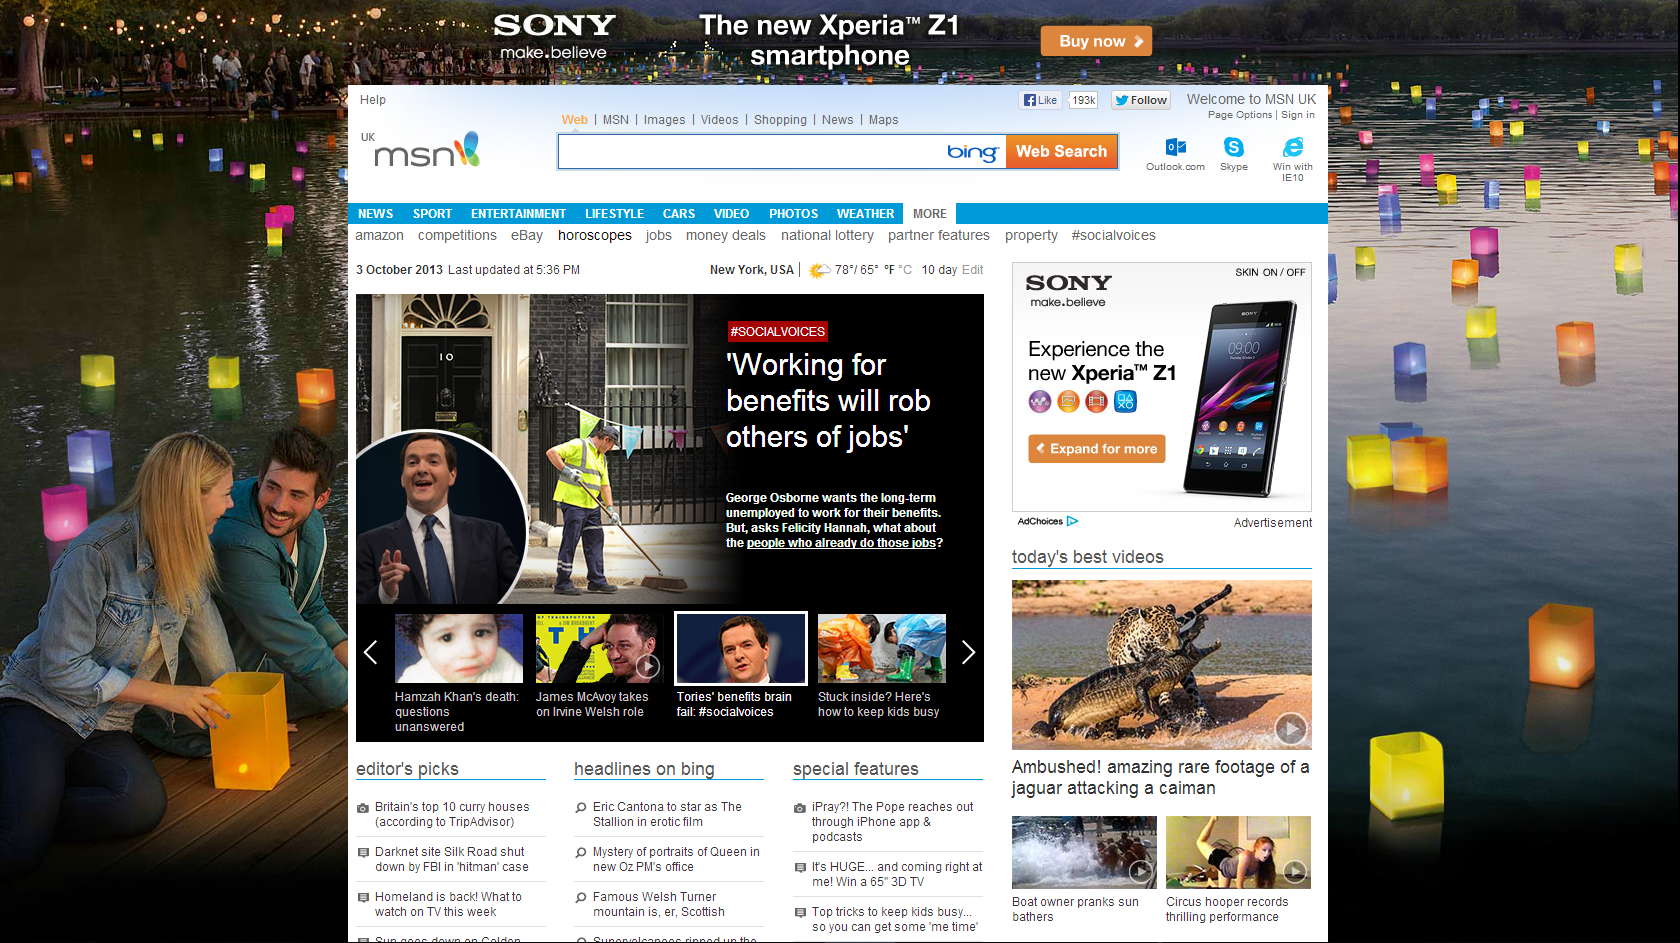 Outlook.com formerly Hotmail, Skype, Bing and Latest News | Hotmail ...